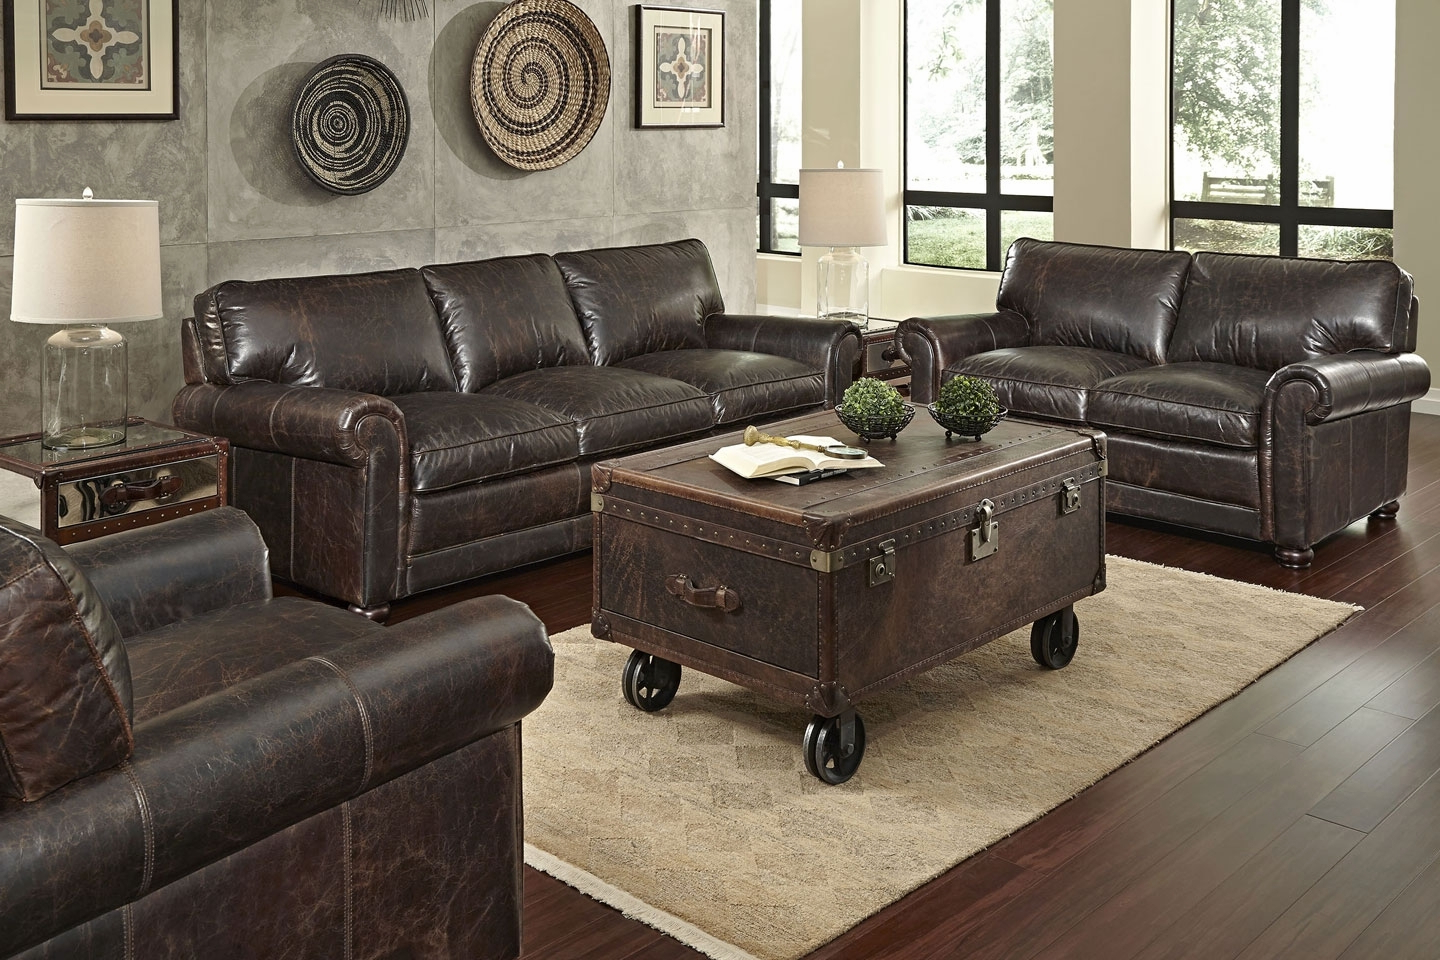 Recent Elegant Sofa Loveseat And Chair Set 49 On Living Room Sofa Ideas With Sofa Loveseat And Chair Set (Gallery 6 of 20)